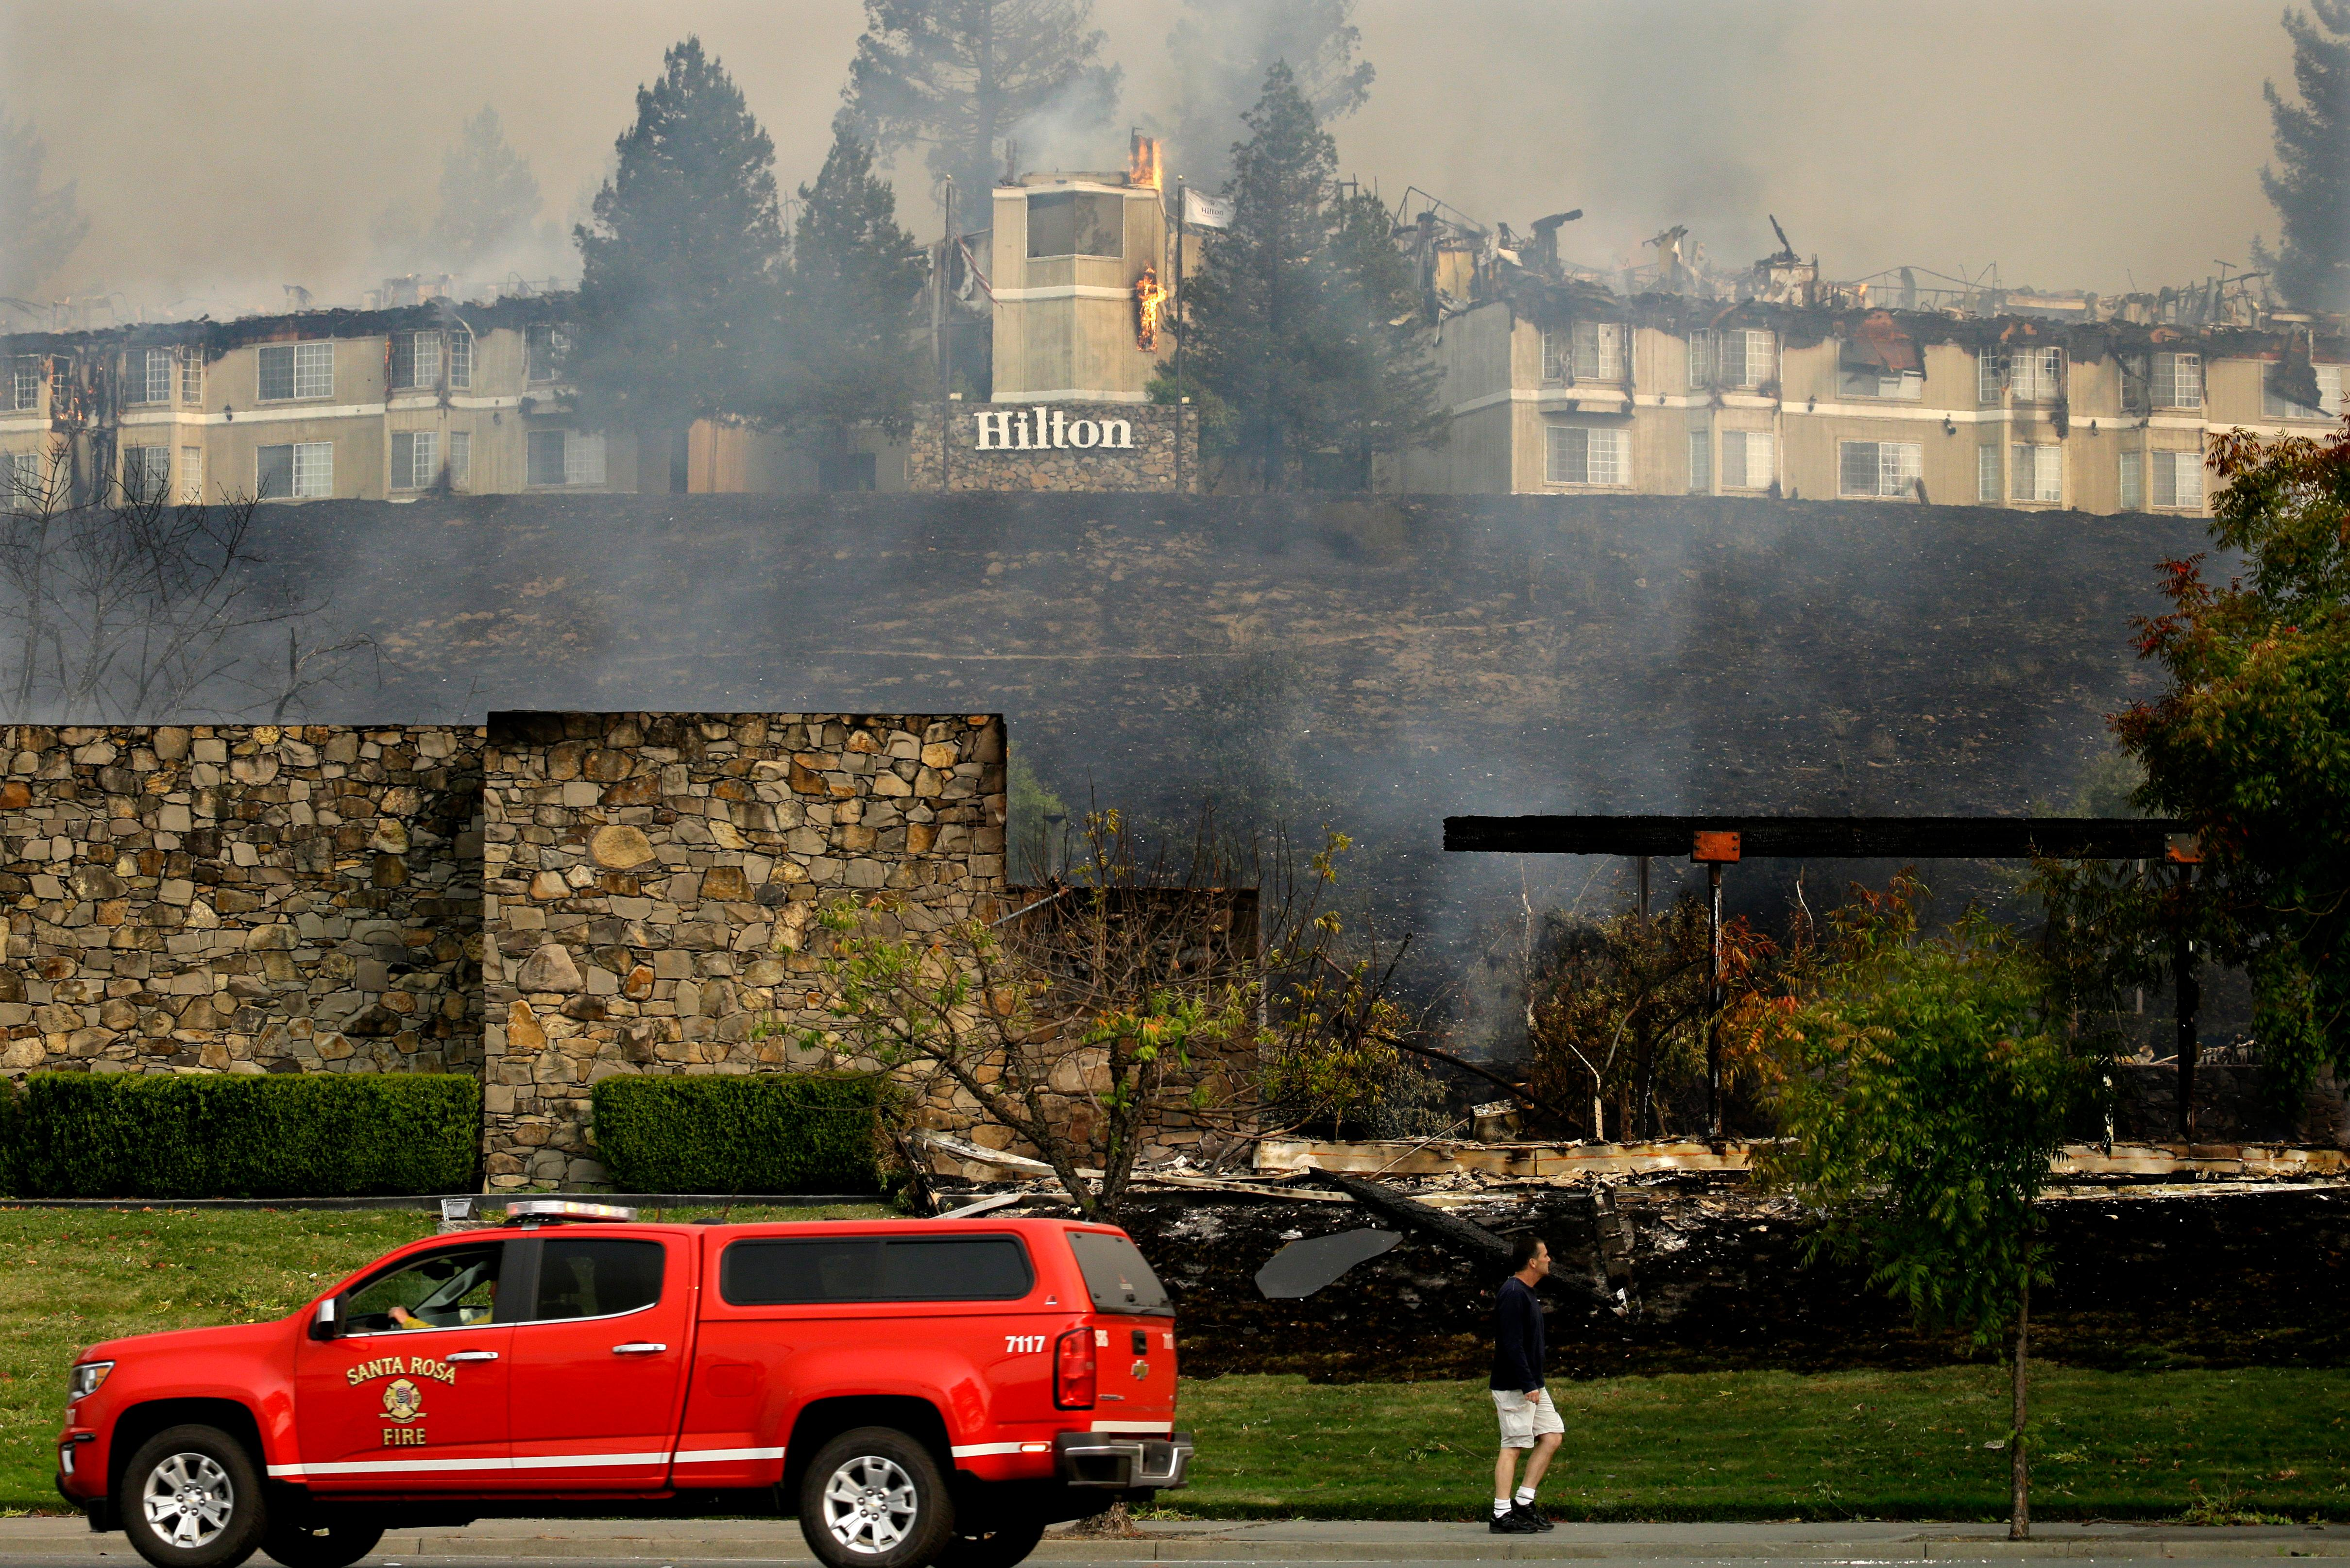 A fire burns at a Hilton hotel on Monday, Oct. 9, 2017, in Santa Rosa, Calif. Wildfires whipped by powerful winds swept through Northern California sending residents on a headlong flight to safety through smoke and flames as homes burned. (AP Photo/Ben Margot)